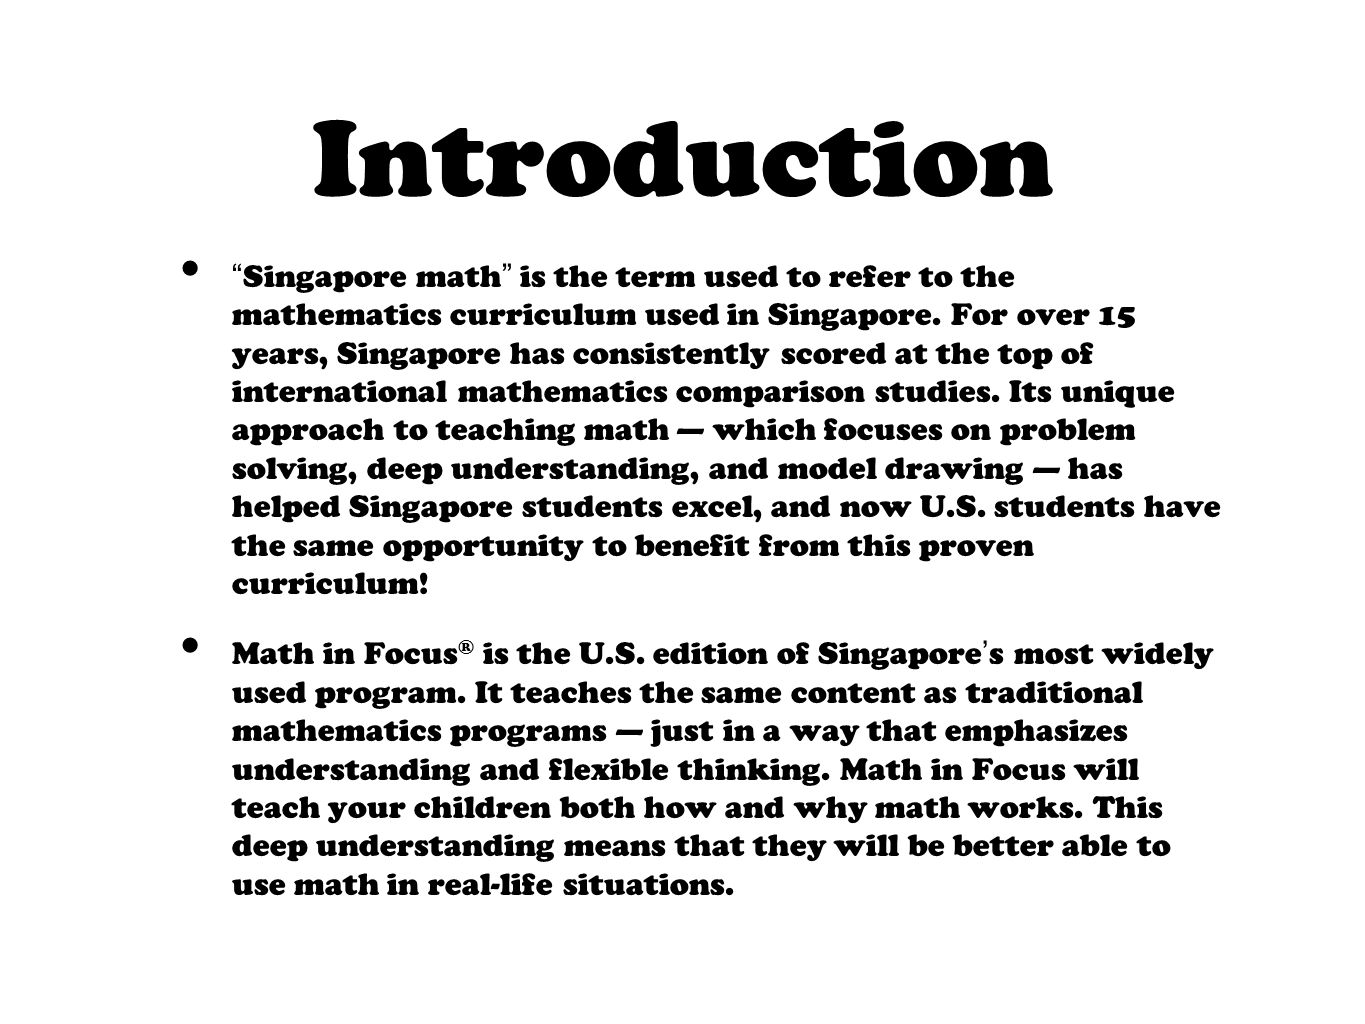 Introduction to singapore